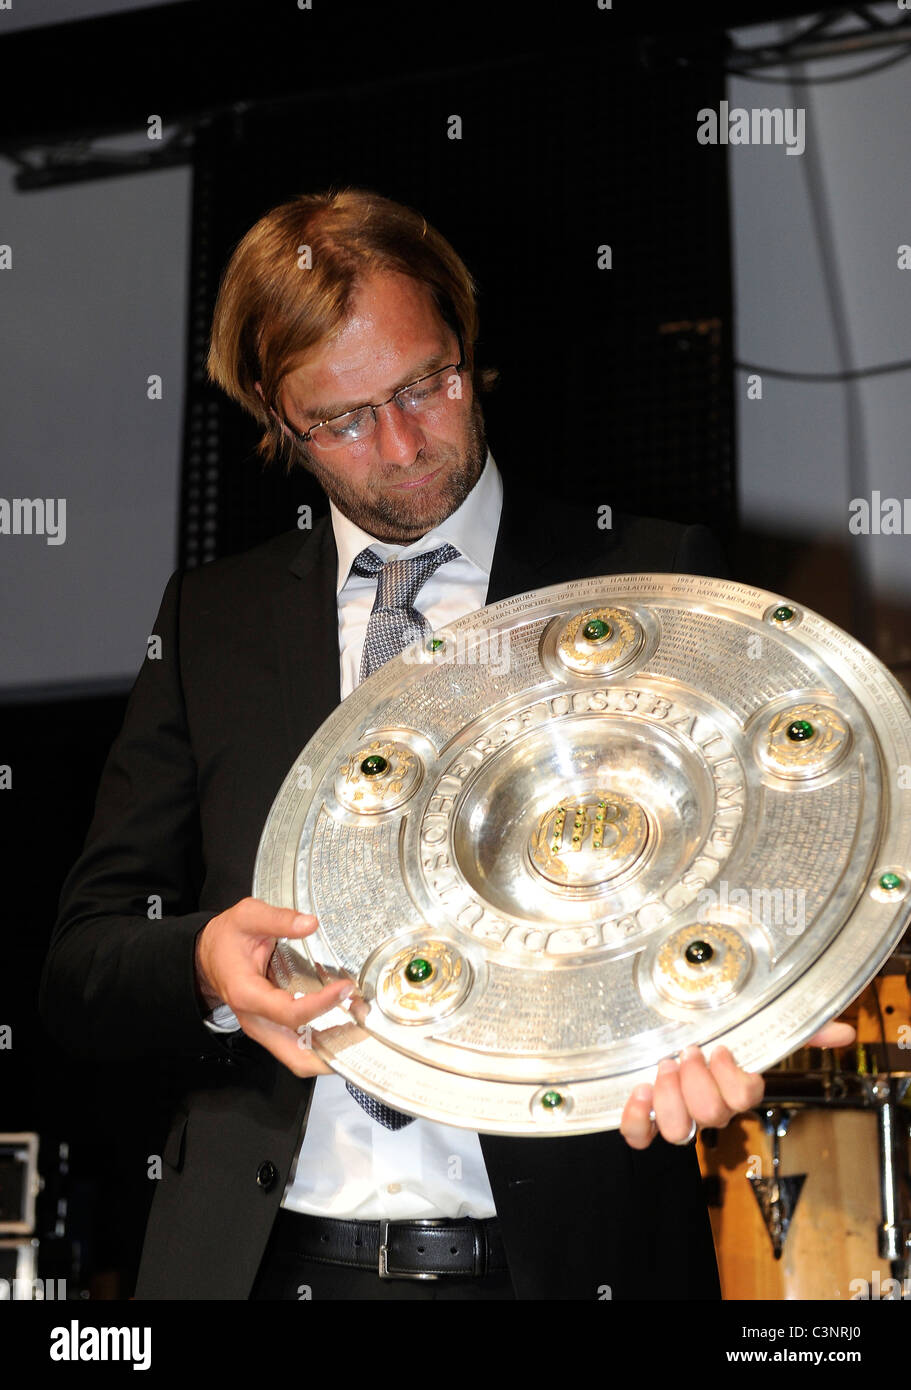 Juergen Klopp, coach of German Bundesliga club Borussia Dortmund holds the football league championship trophy - Stock Image